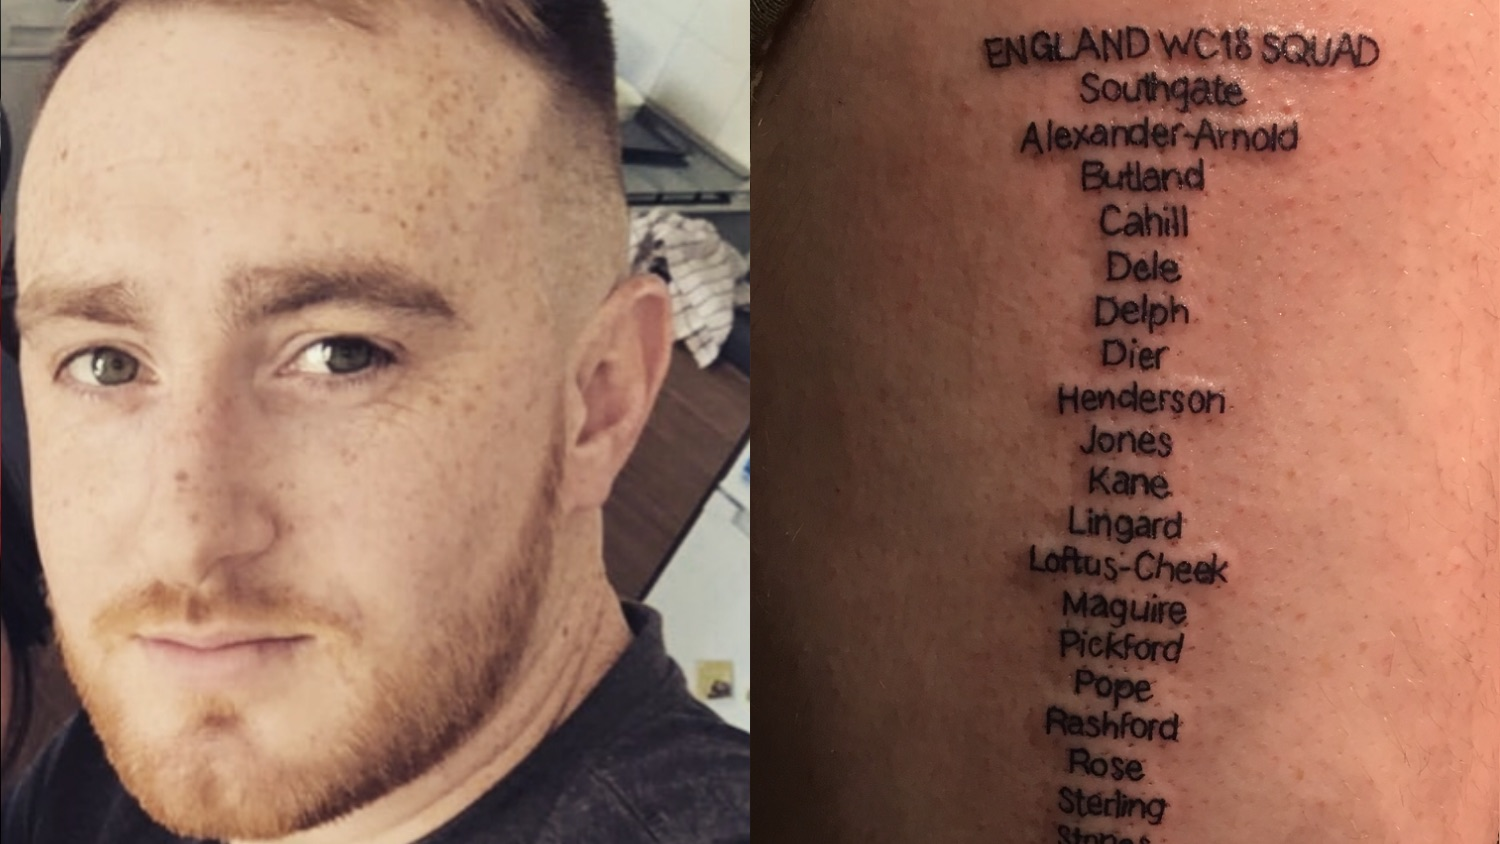 World Cup Squad Tattoo